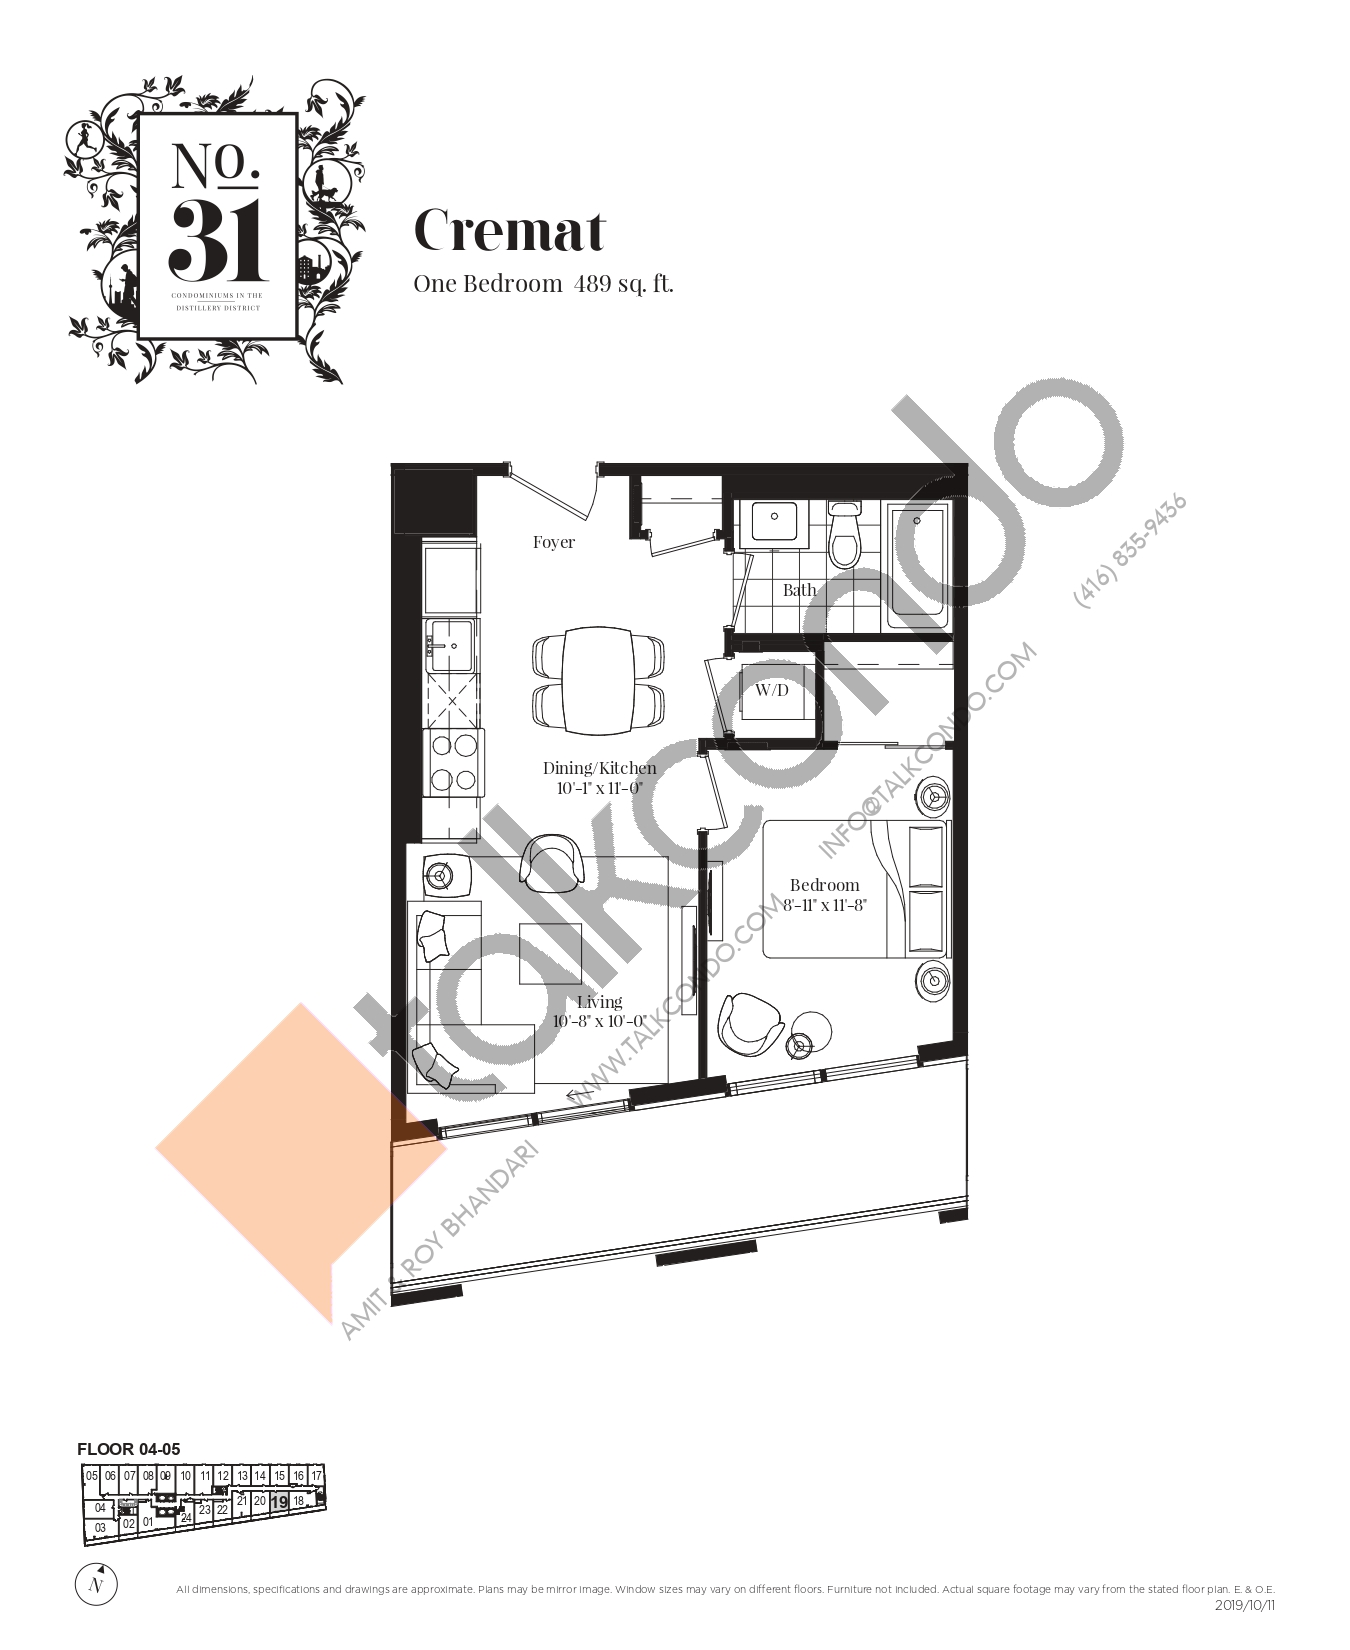 Cremat Floor Plan at No. 31 Condos - 489 sq.ft